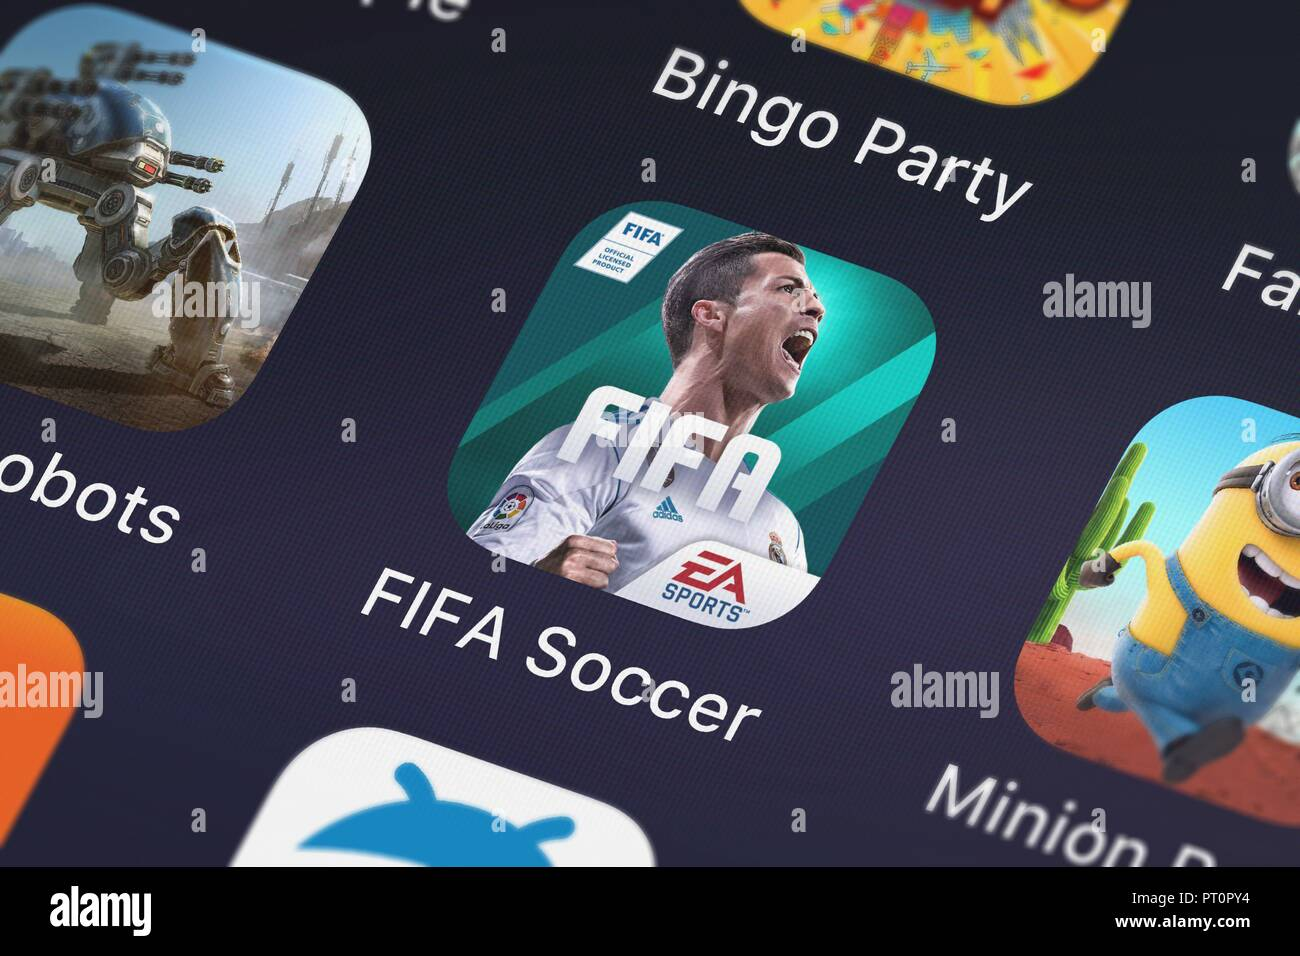 Londres, Royaume-Uni - Octobre 05, 2018 : Capture d'écran de l'application mobile de l'Electronic Arts FIFA. Photo Stock